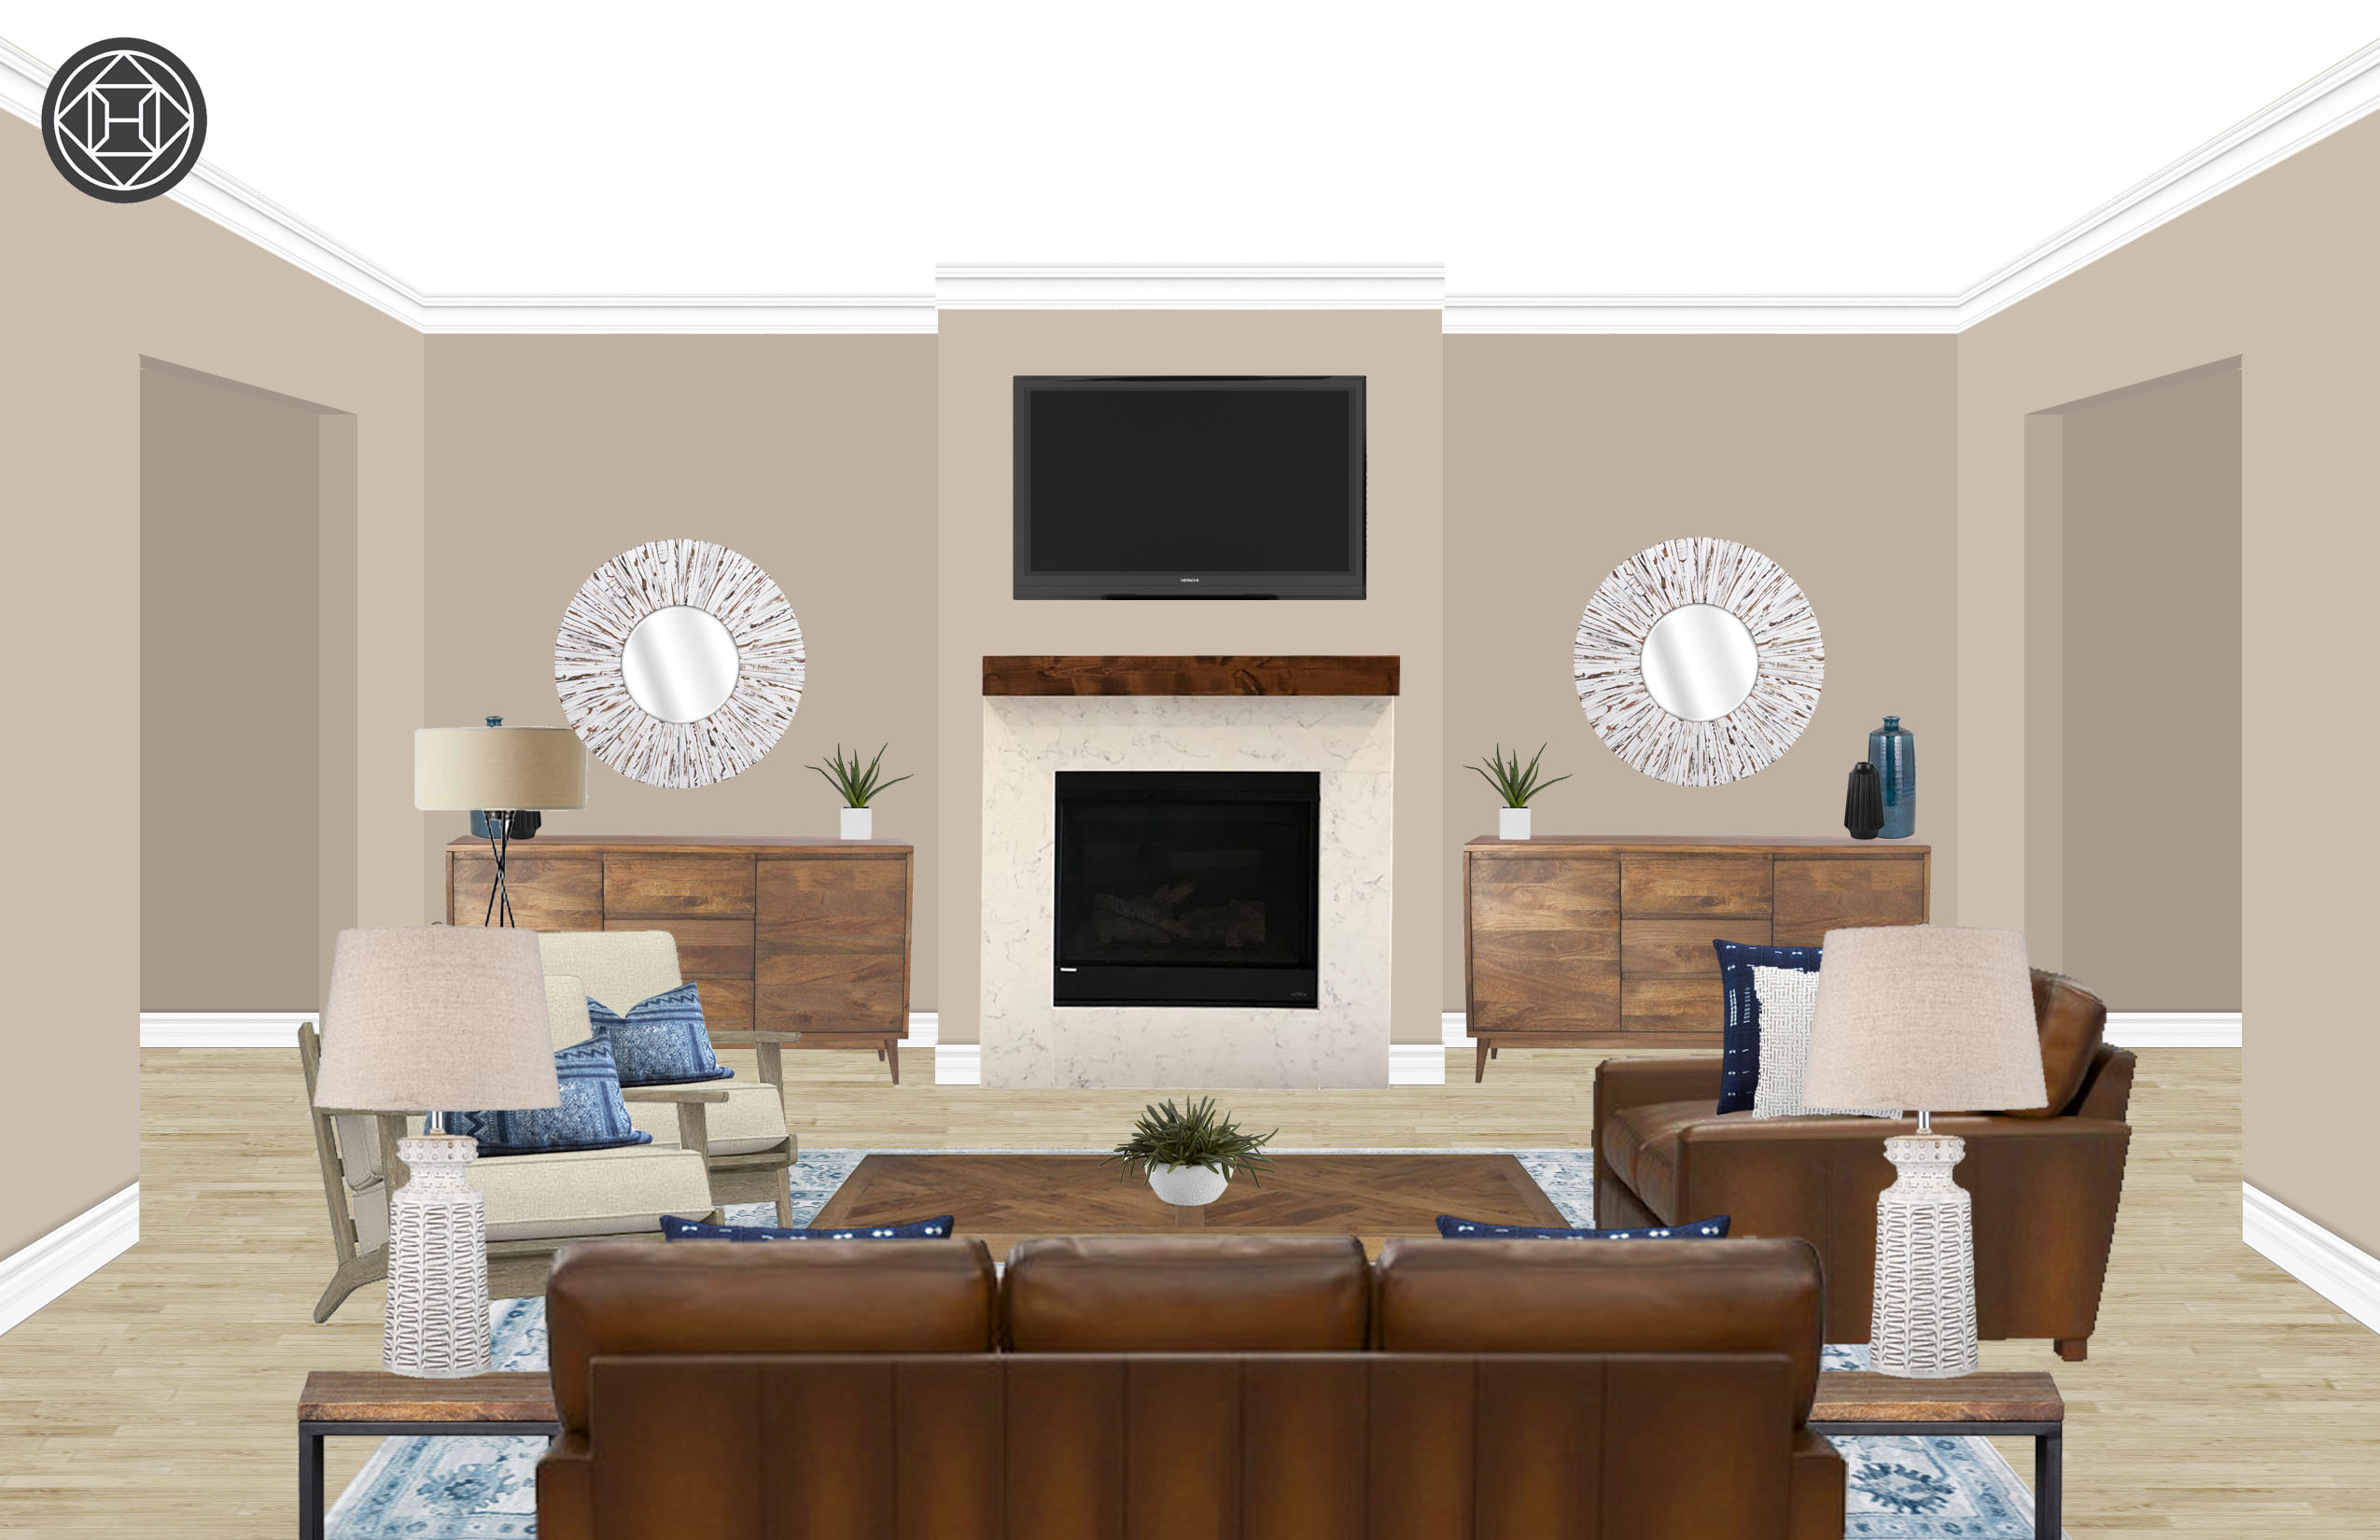 coastal transitional living room design havenly interior phpmwnpcx bedford jute rope accent table view holly profile target threshold windham country coffee tables outdoor patio